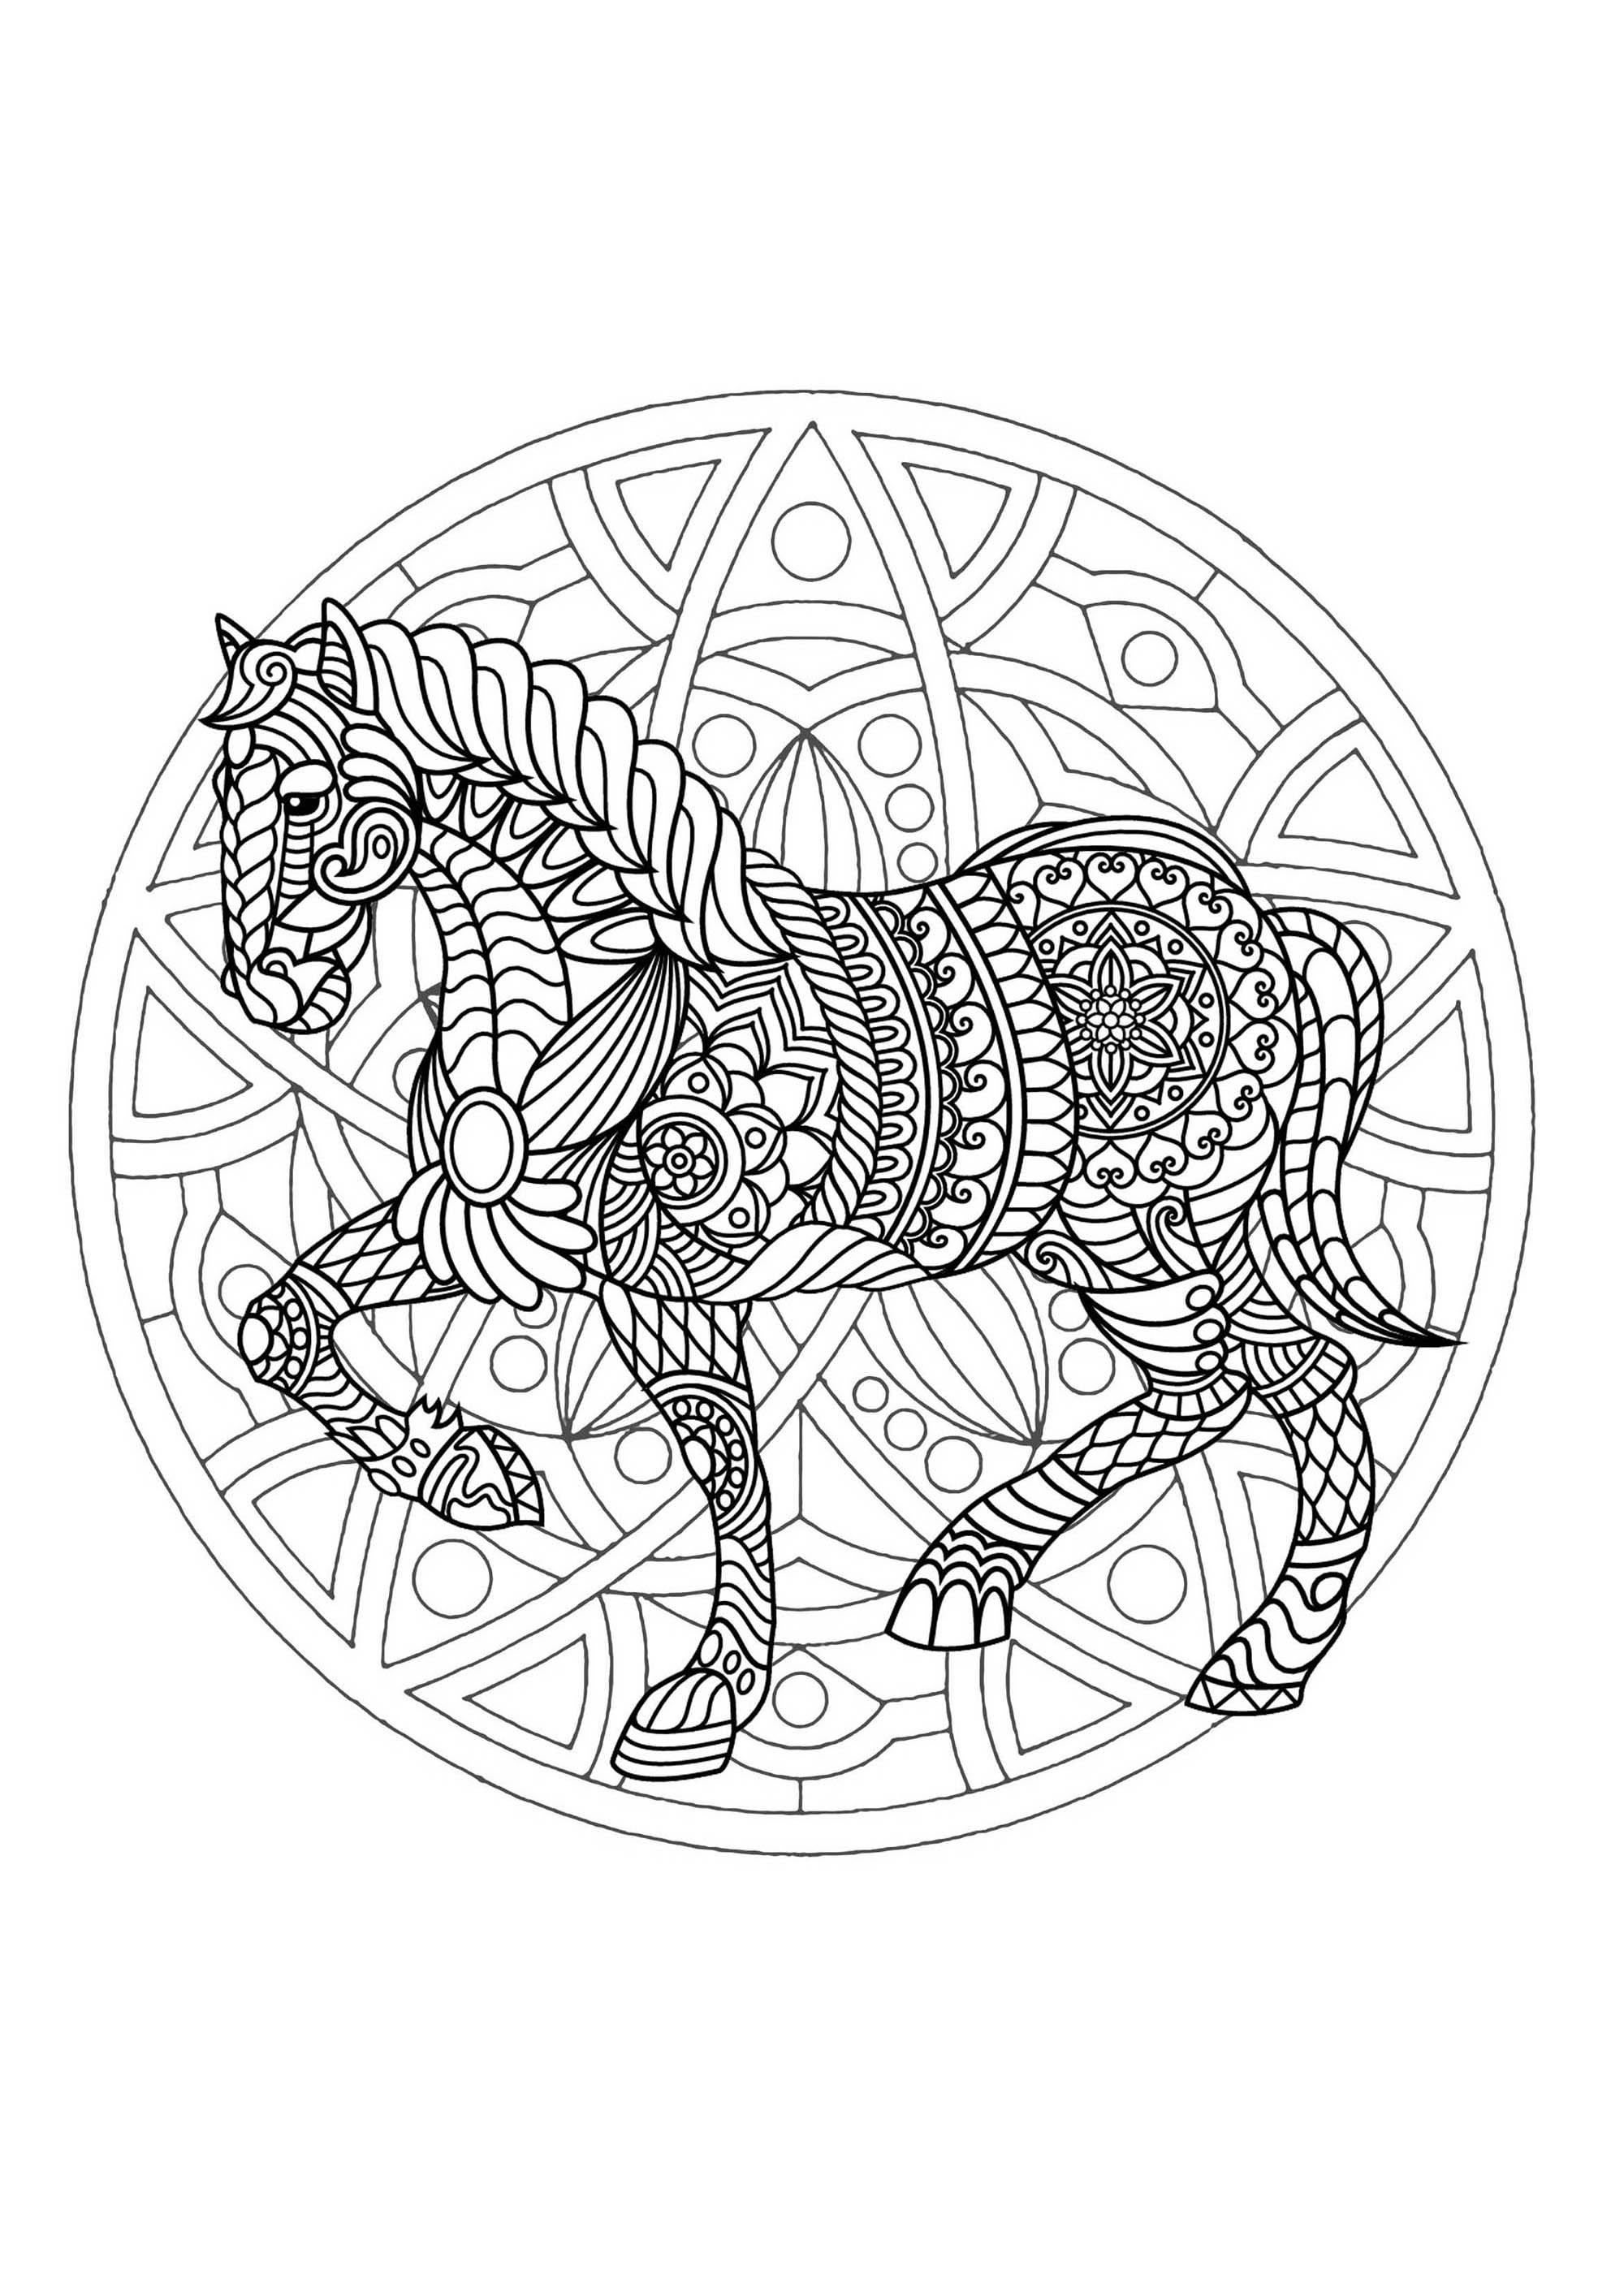 Complex Mandala coloring page with horse 1 - Difficult ...